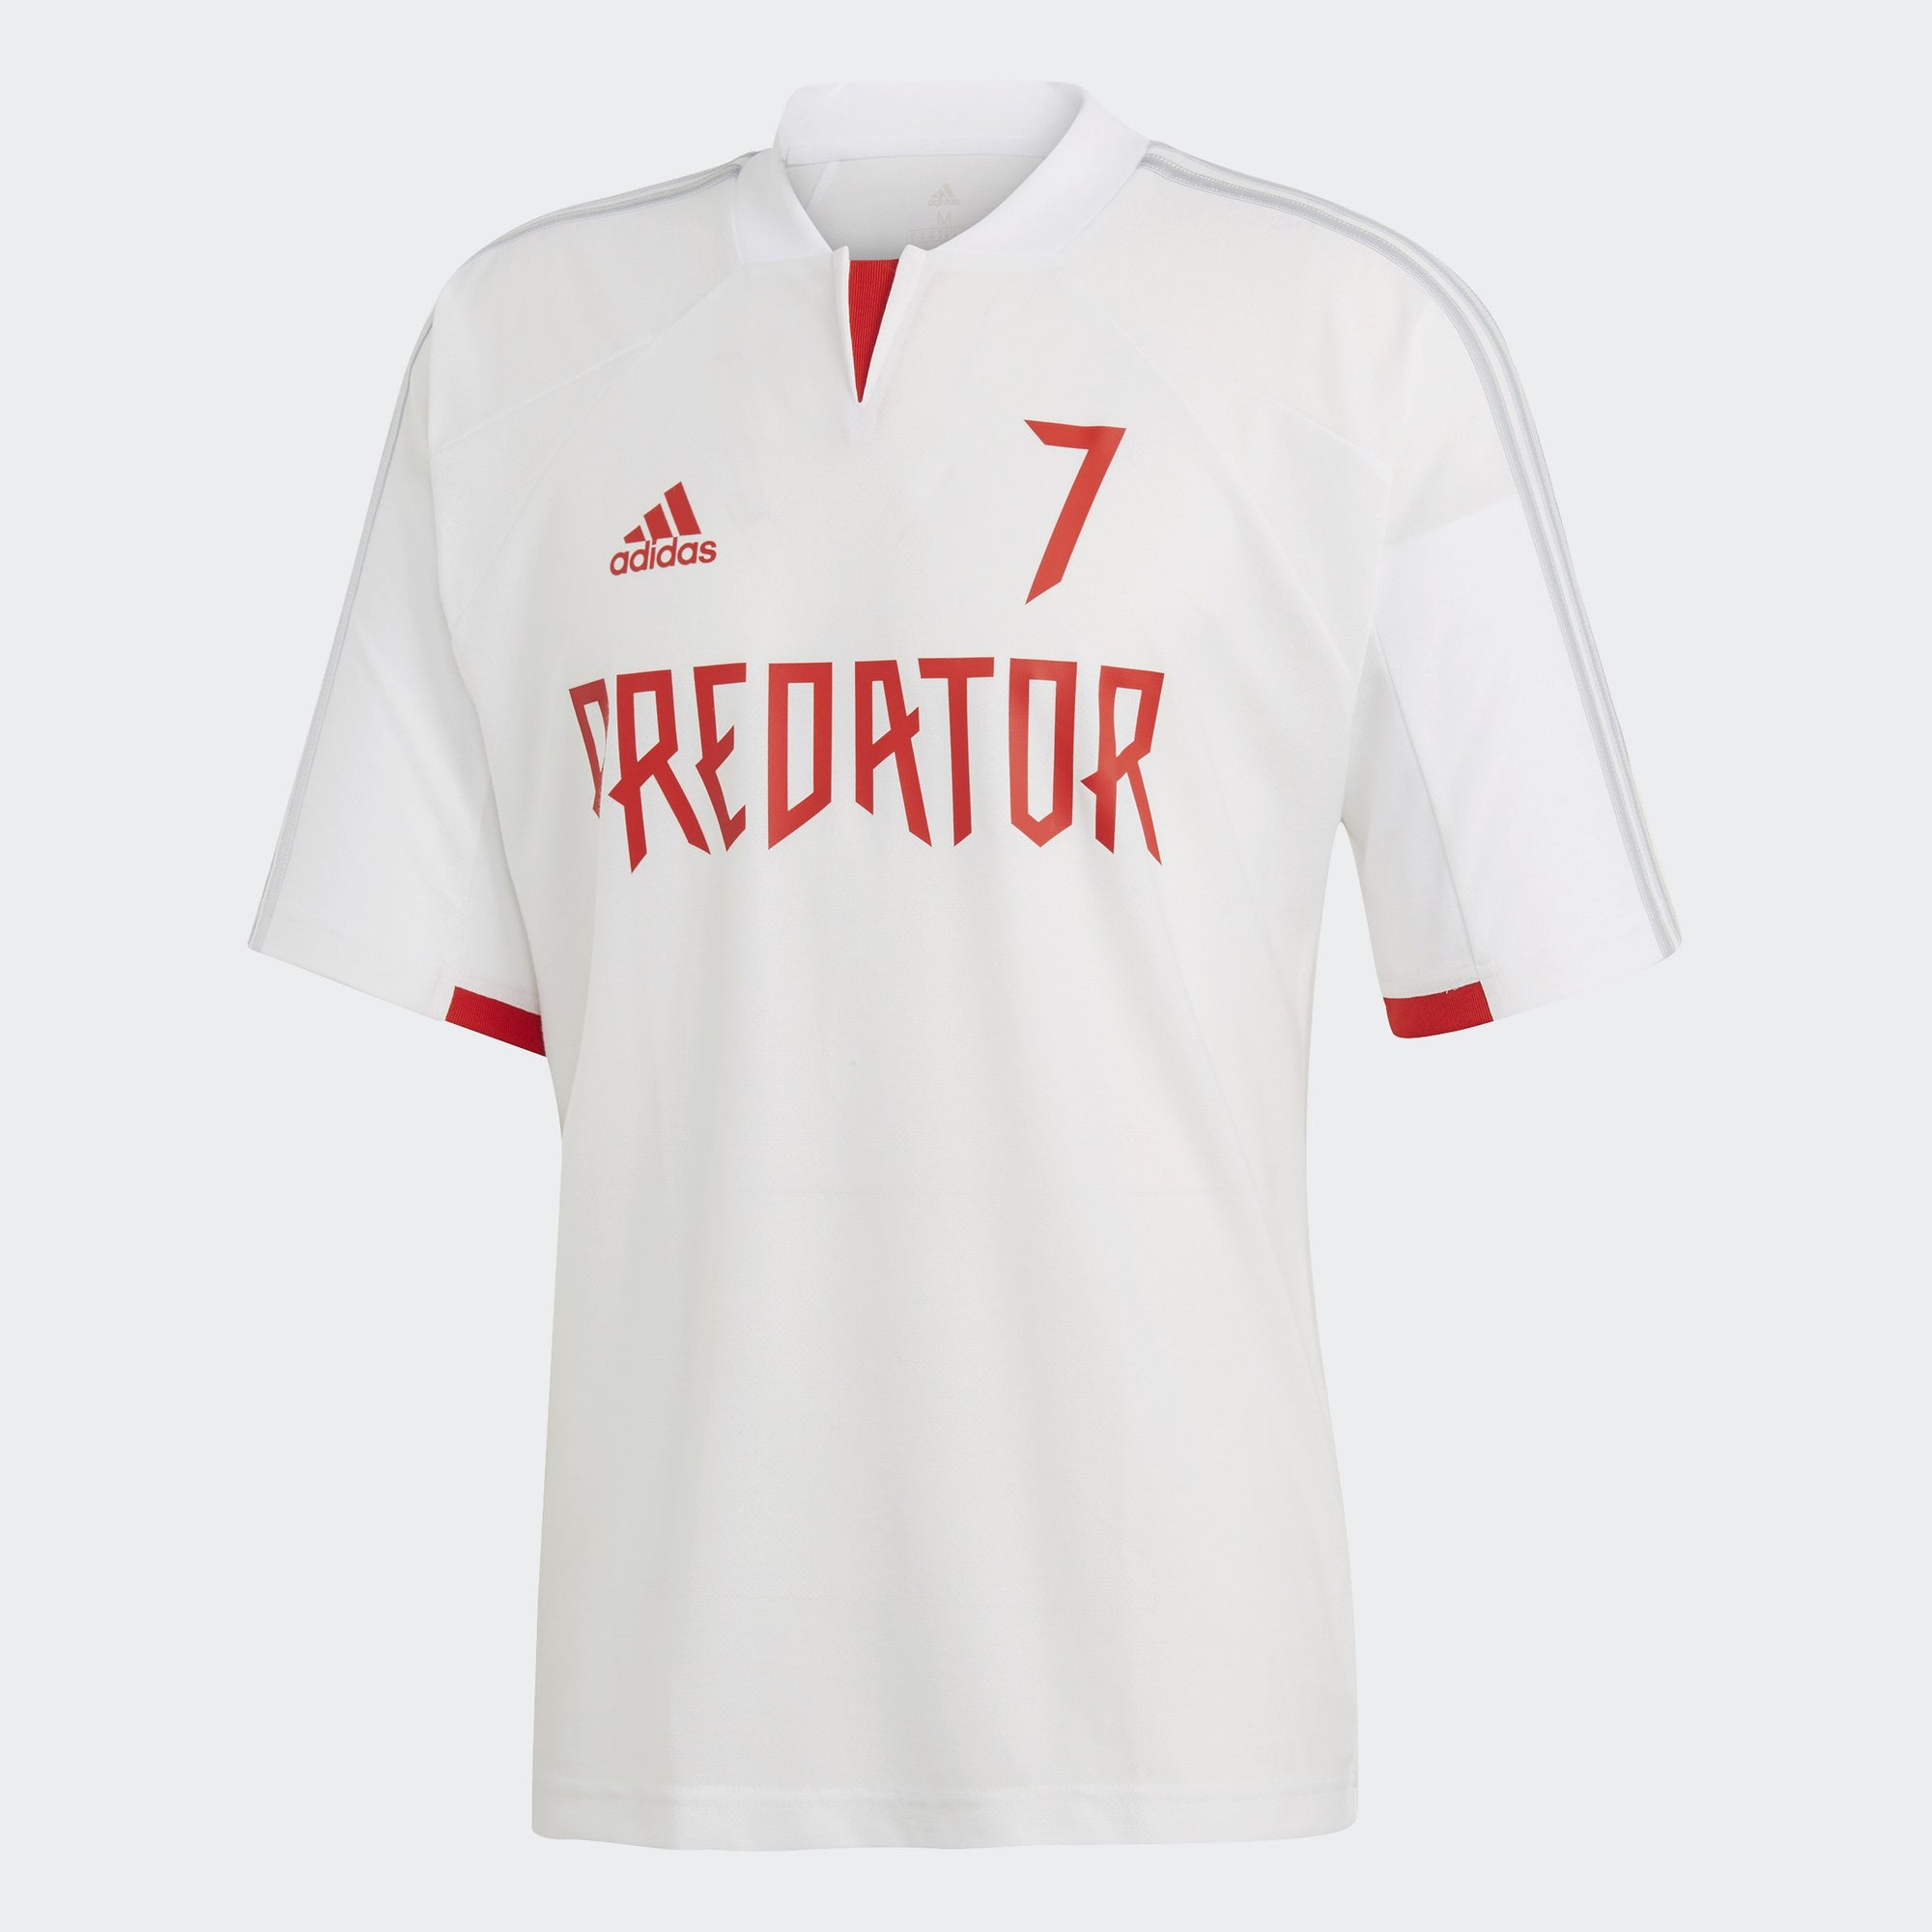 Predator David Beckham Men's Jersey - White/Clear Grey